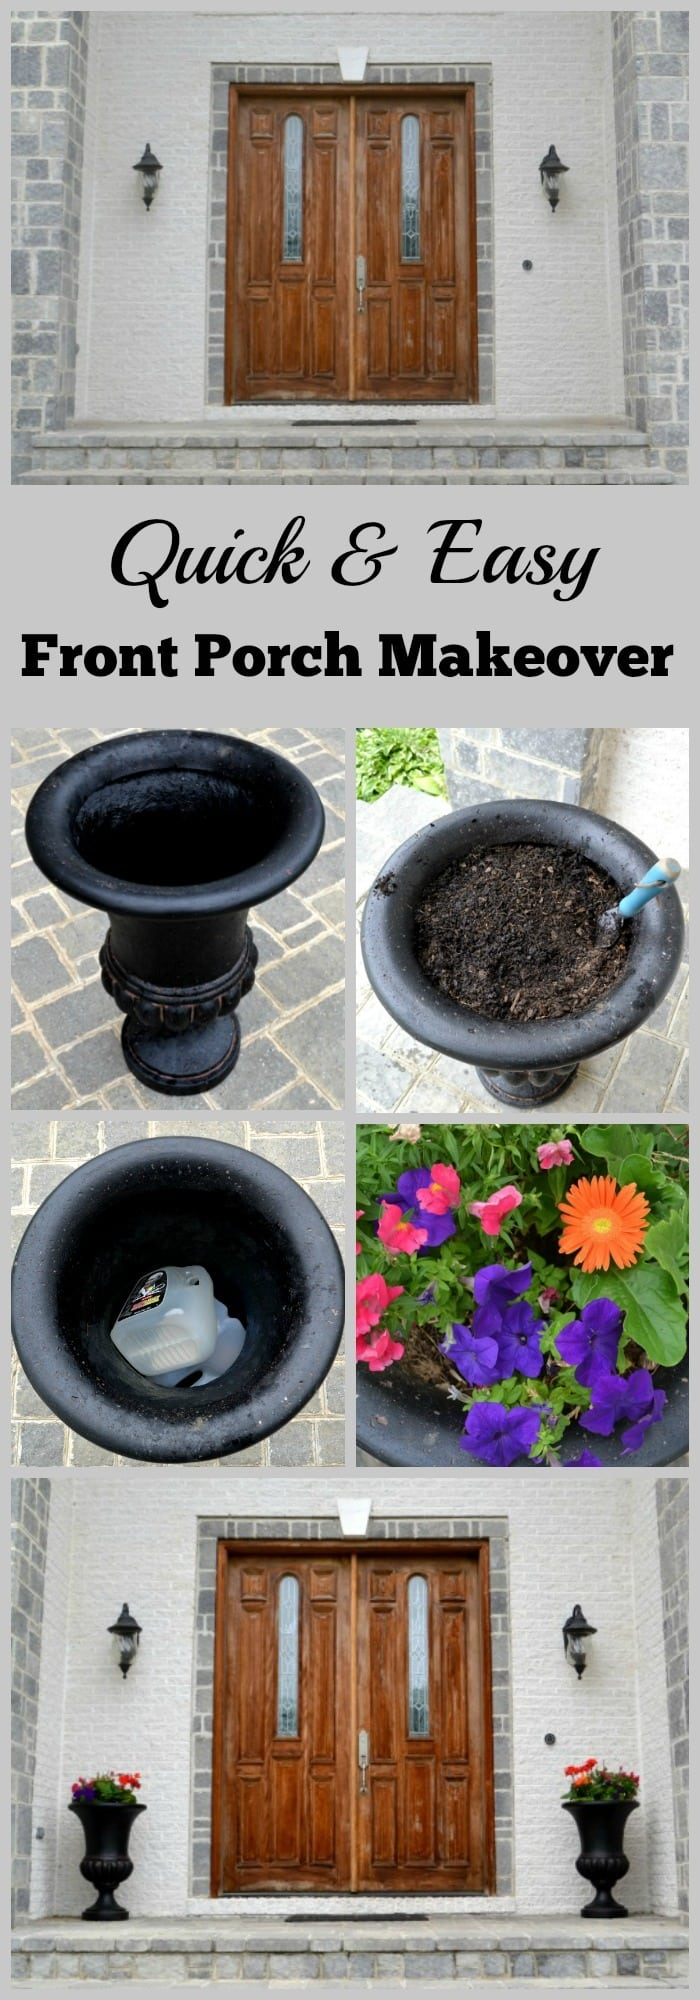 a collage of putting flowers in an urn as a quick and easy project to enhance your home's curb appeal with title text reading Quick & Easy Front Porch Makeover